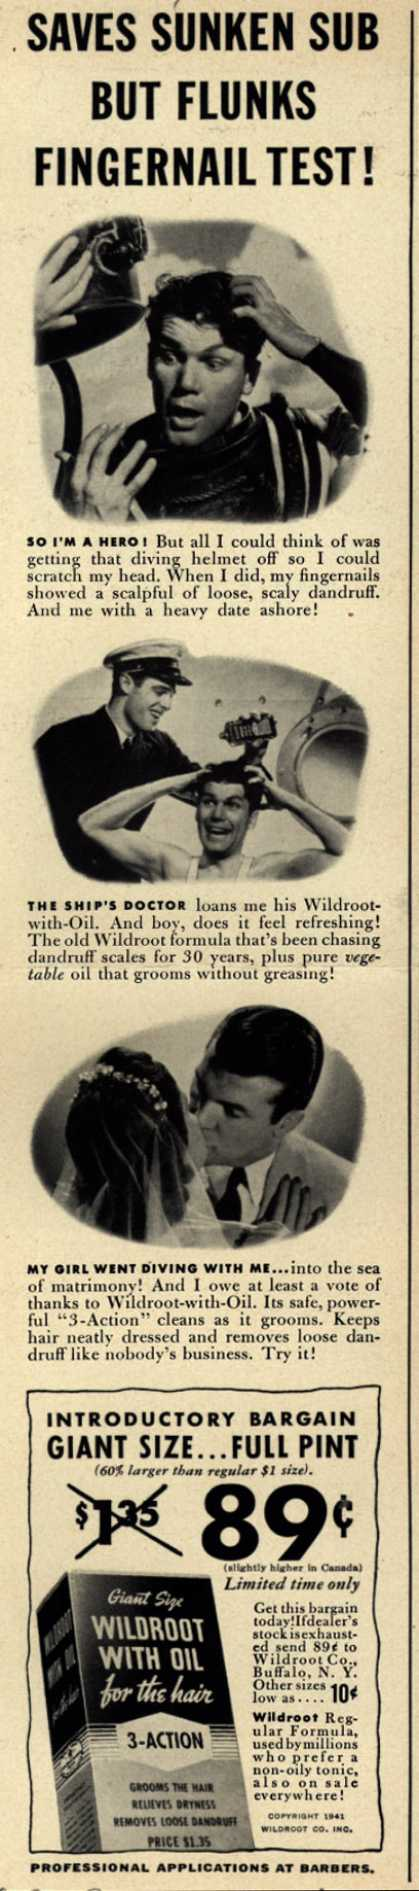 Wildroot Company's Wildroot with Oil – Saves Sunken Sub But Flunks Fingernail Test (1941)